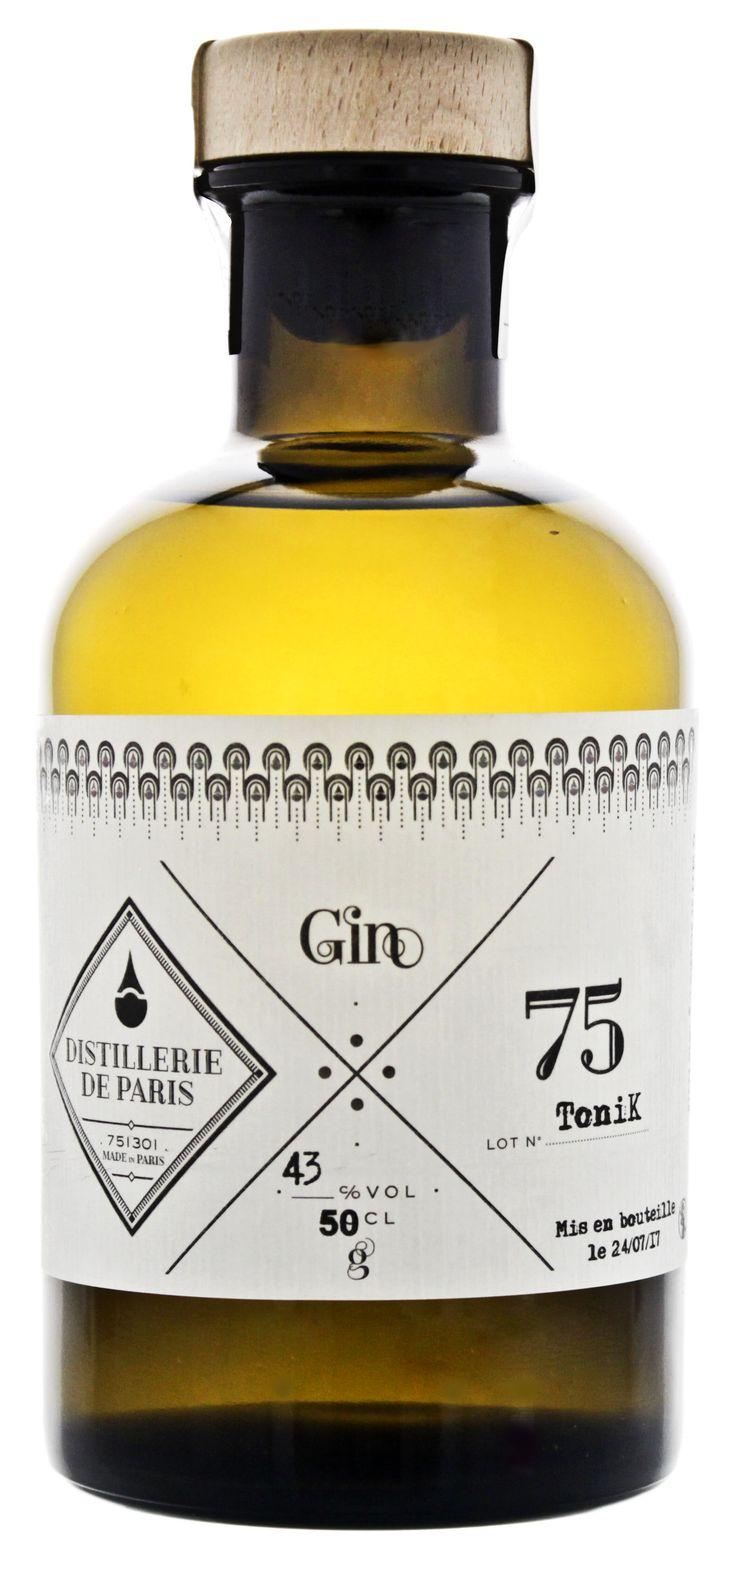 Distillerie de Paris Gin